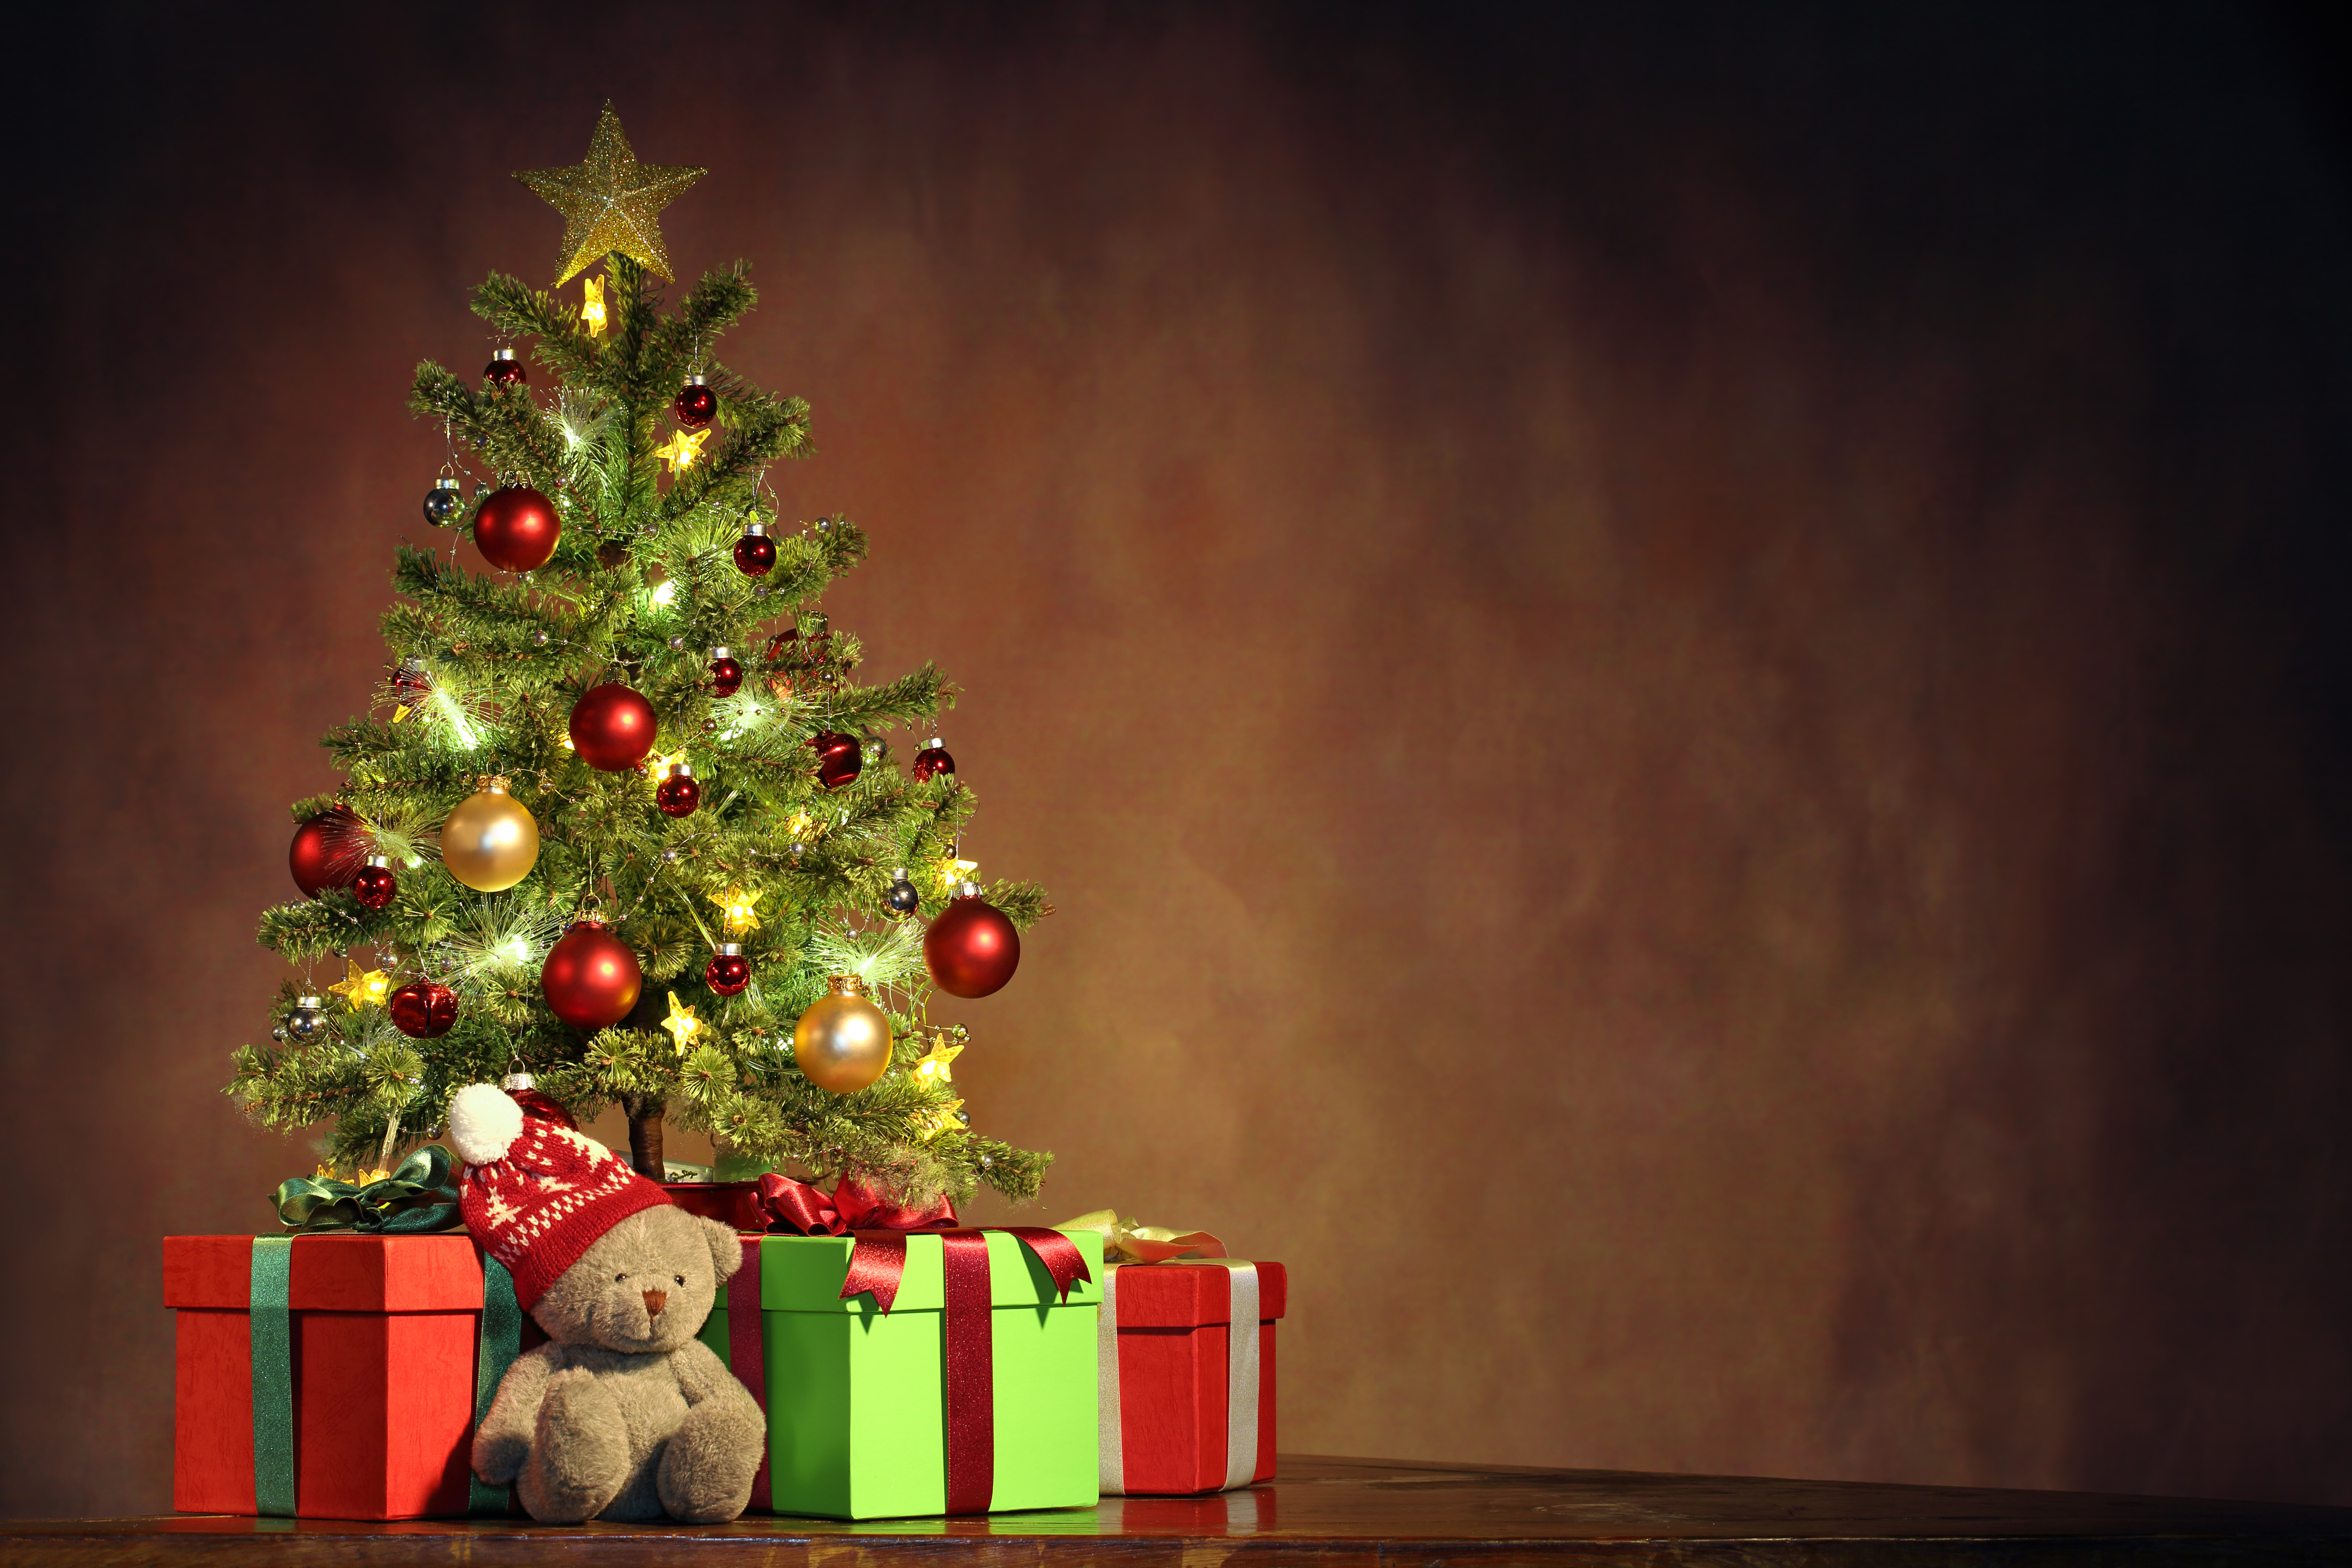 5760x3840 - Christmas Trees Backgrounds 18